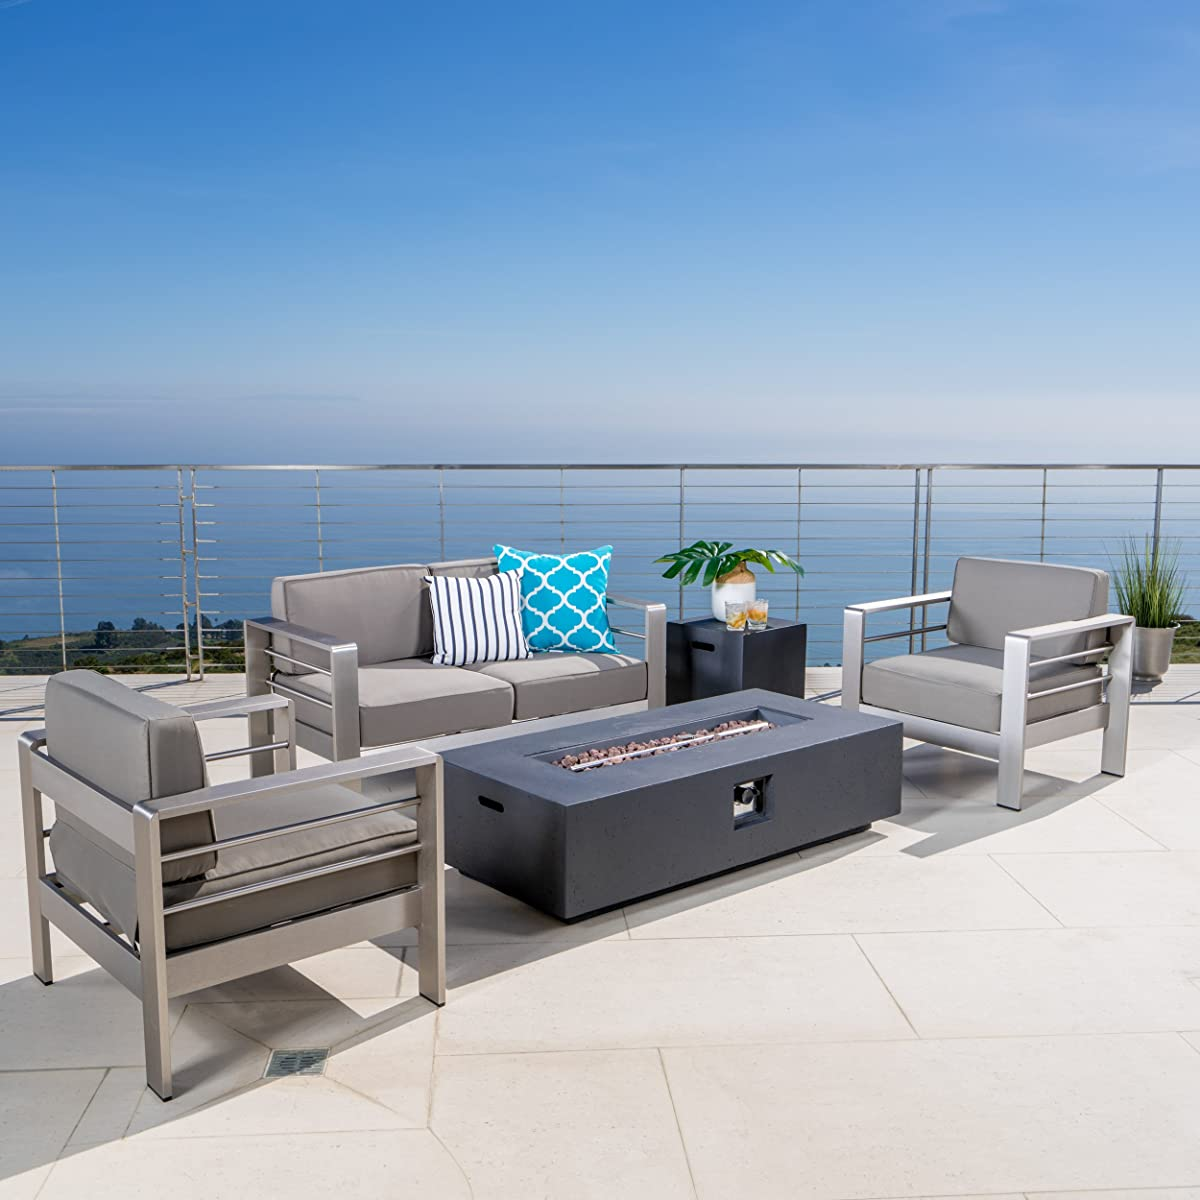 Crested Bay Patio Furniture ~ Outdoor Aluminum Sectional Sofa Set Dark Grey Fire Table